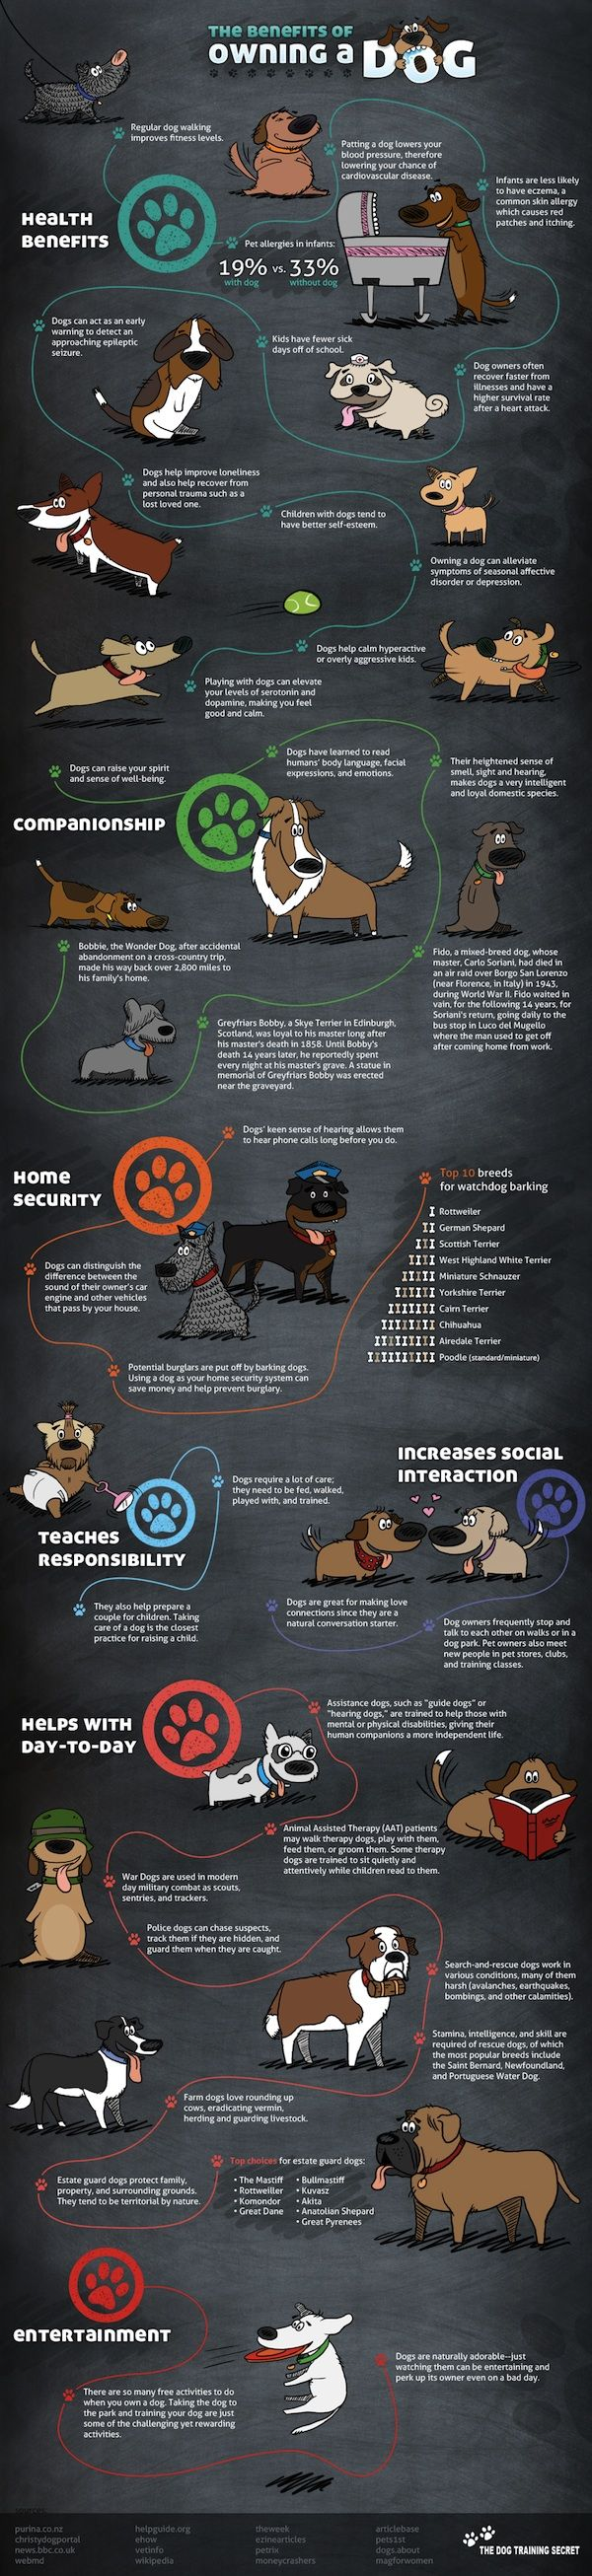 Infographic: The Benefits Of Owning A Dog